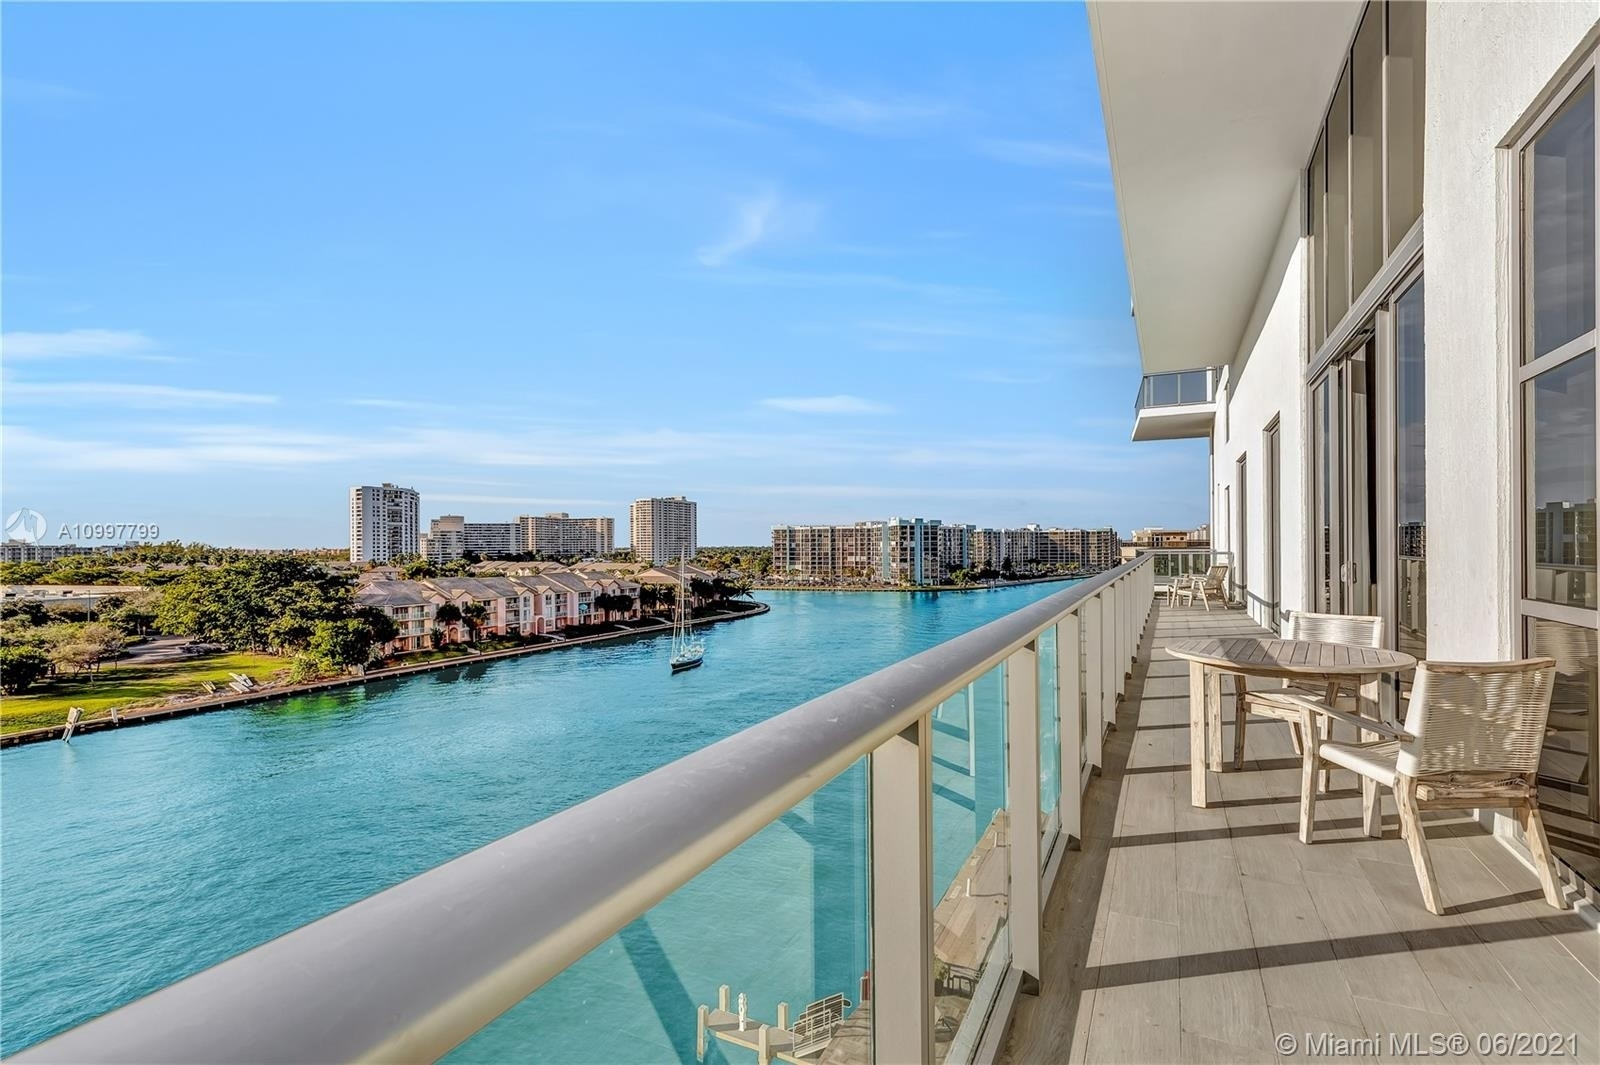 Property at 4010 S Ocean Dr , 504 Hallandale Beach, FL 33019